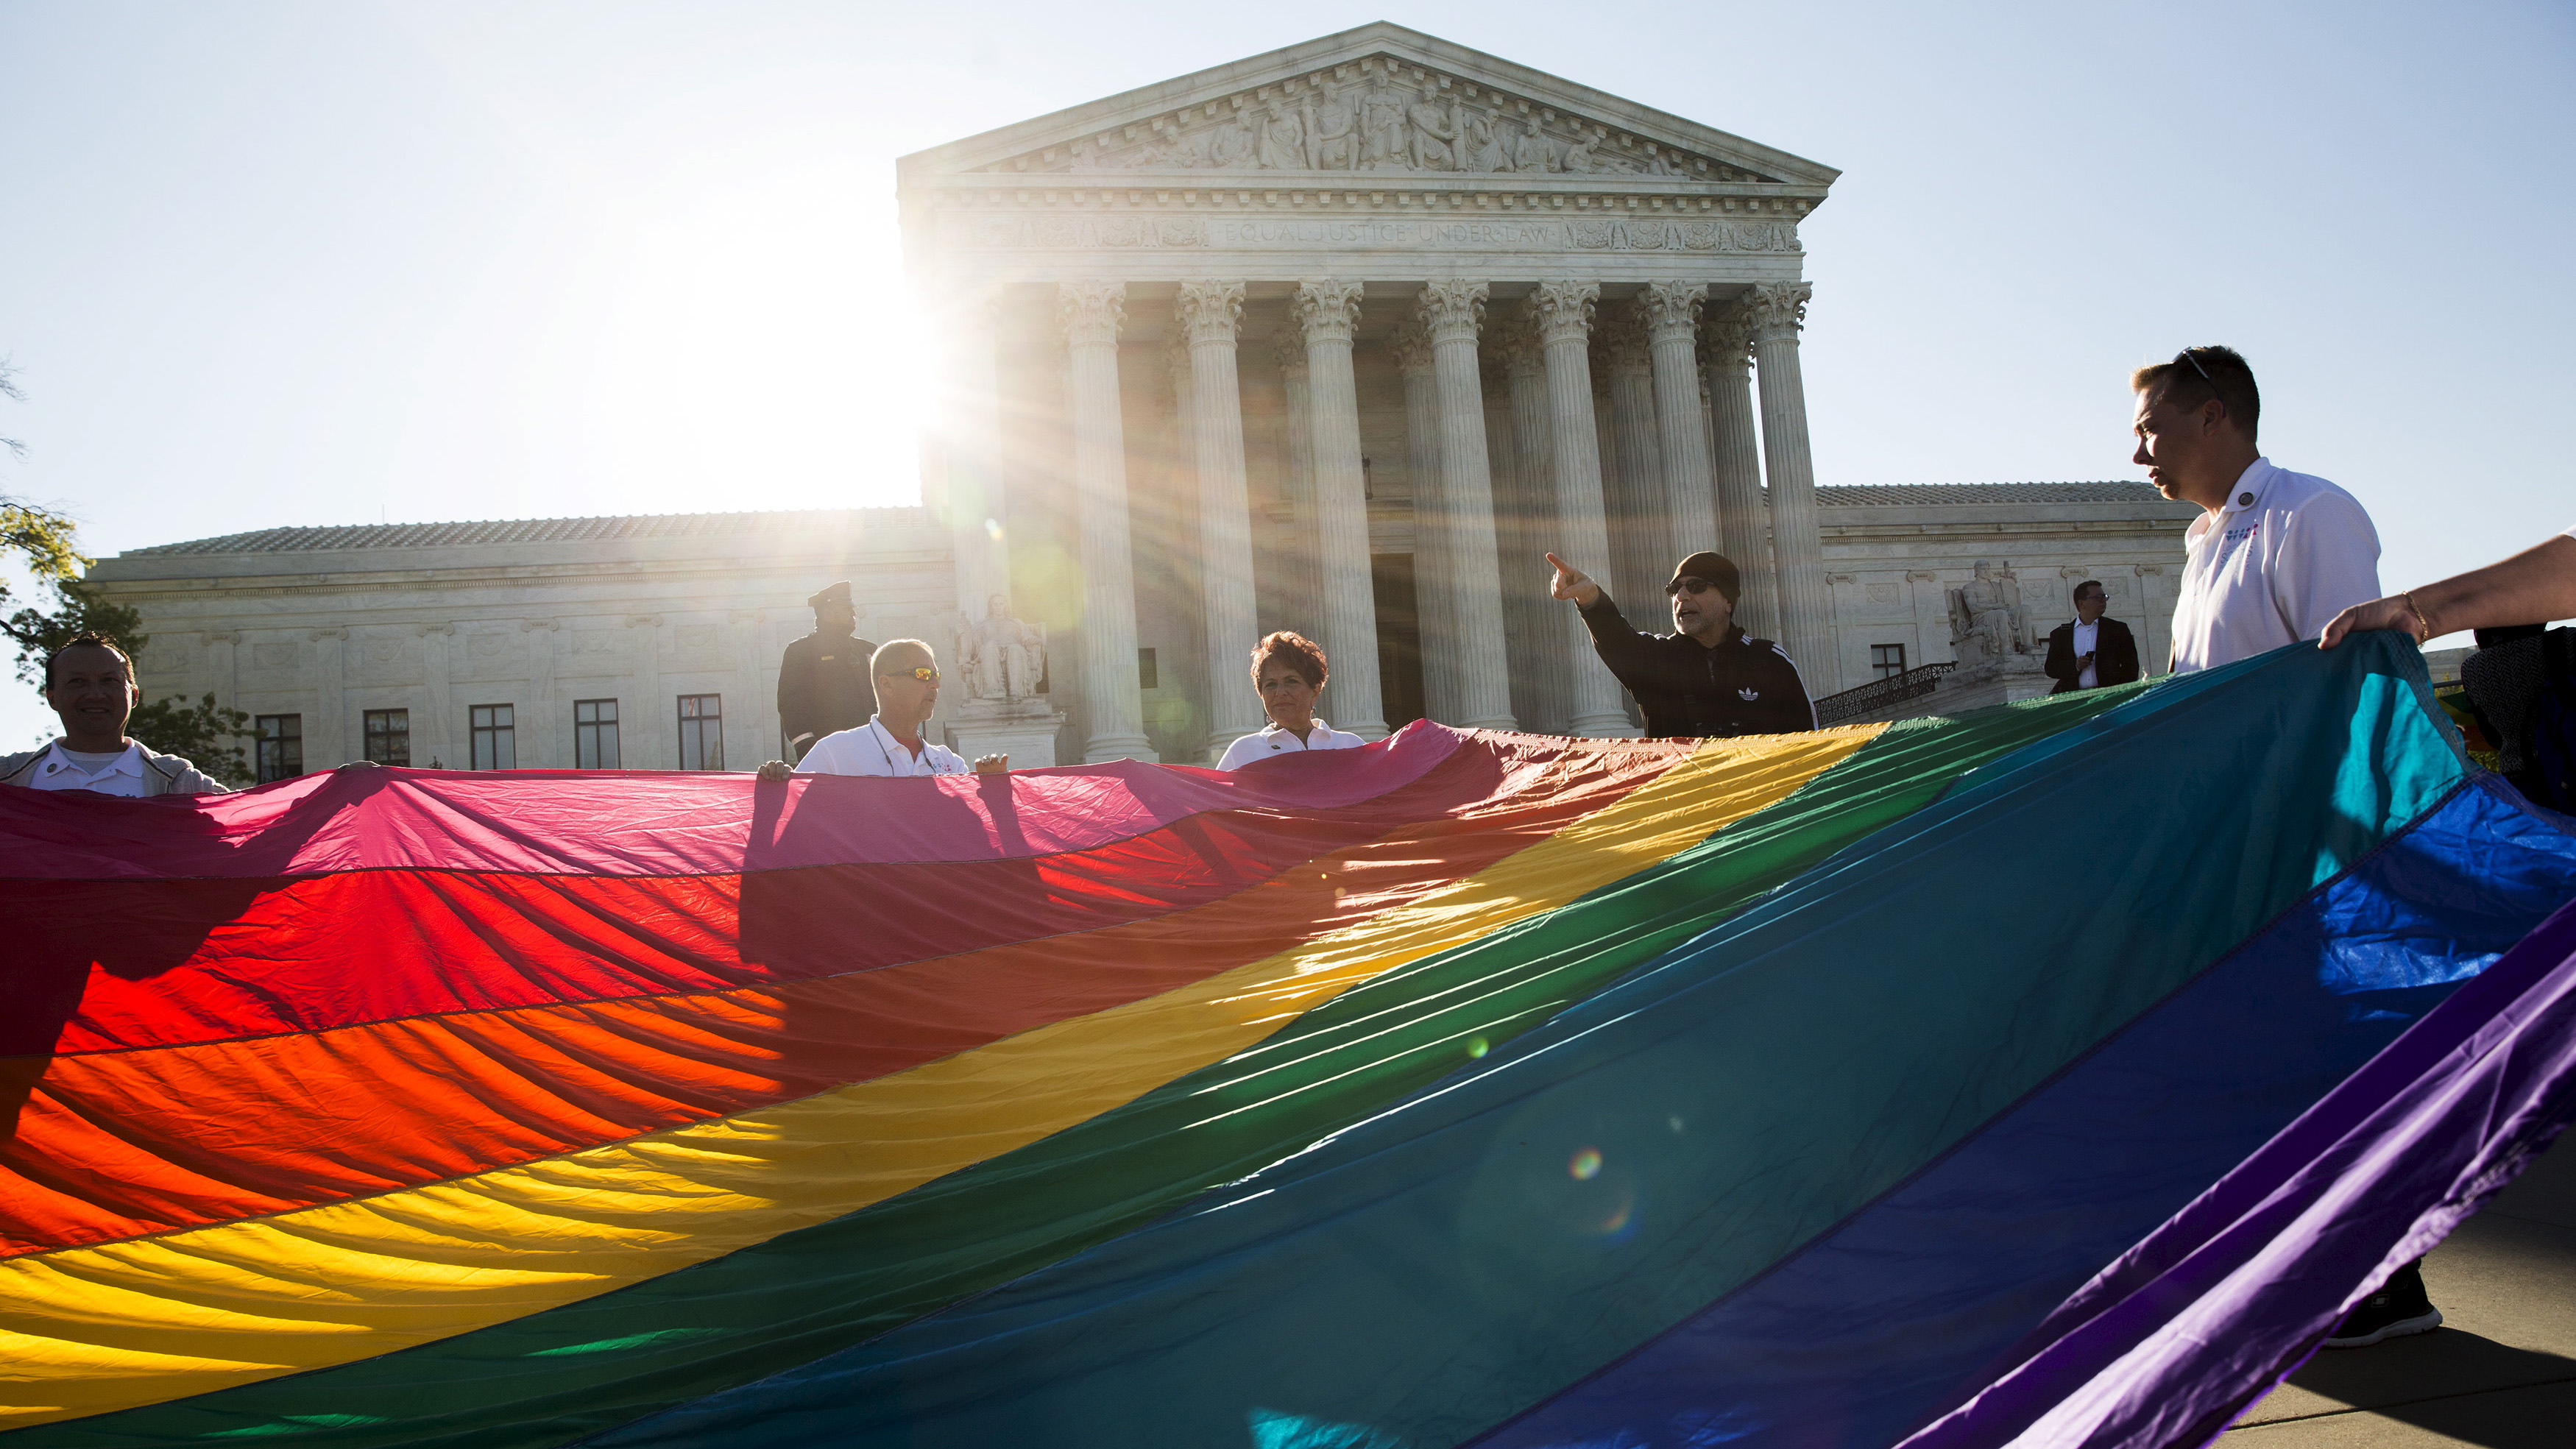 Gay marriage supporters hold a gay rights flag in front of the Supreme Court before a hearing about gay marriage on April 28, 2015.